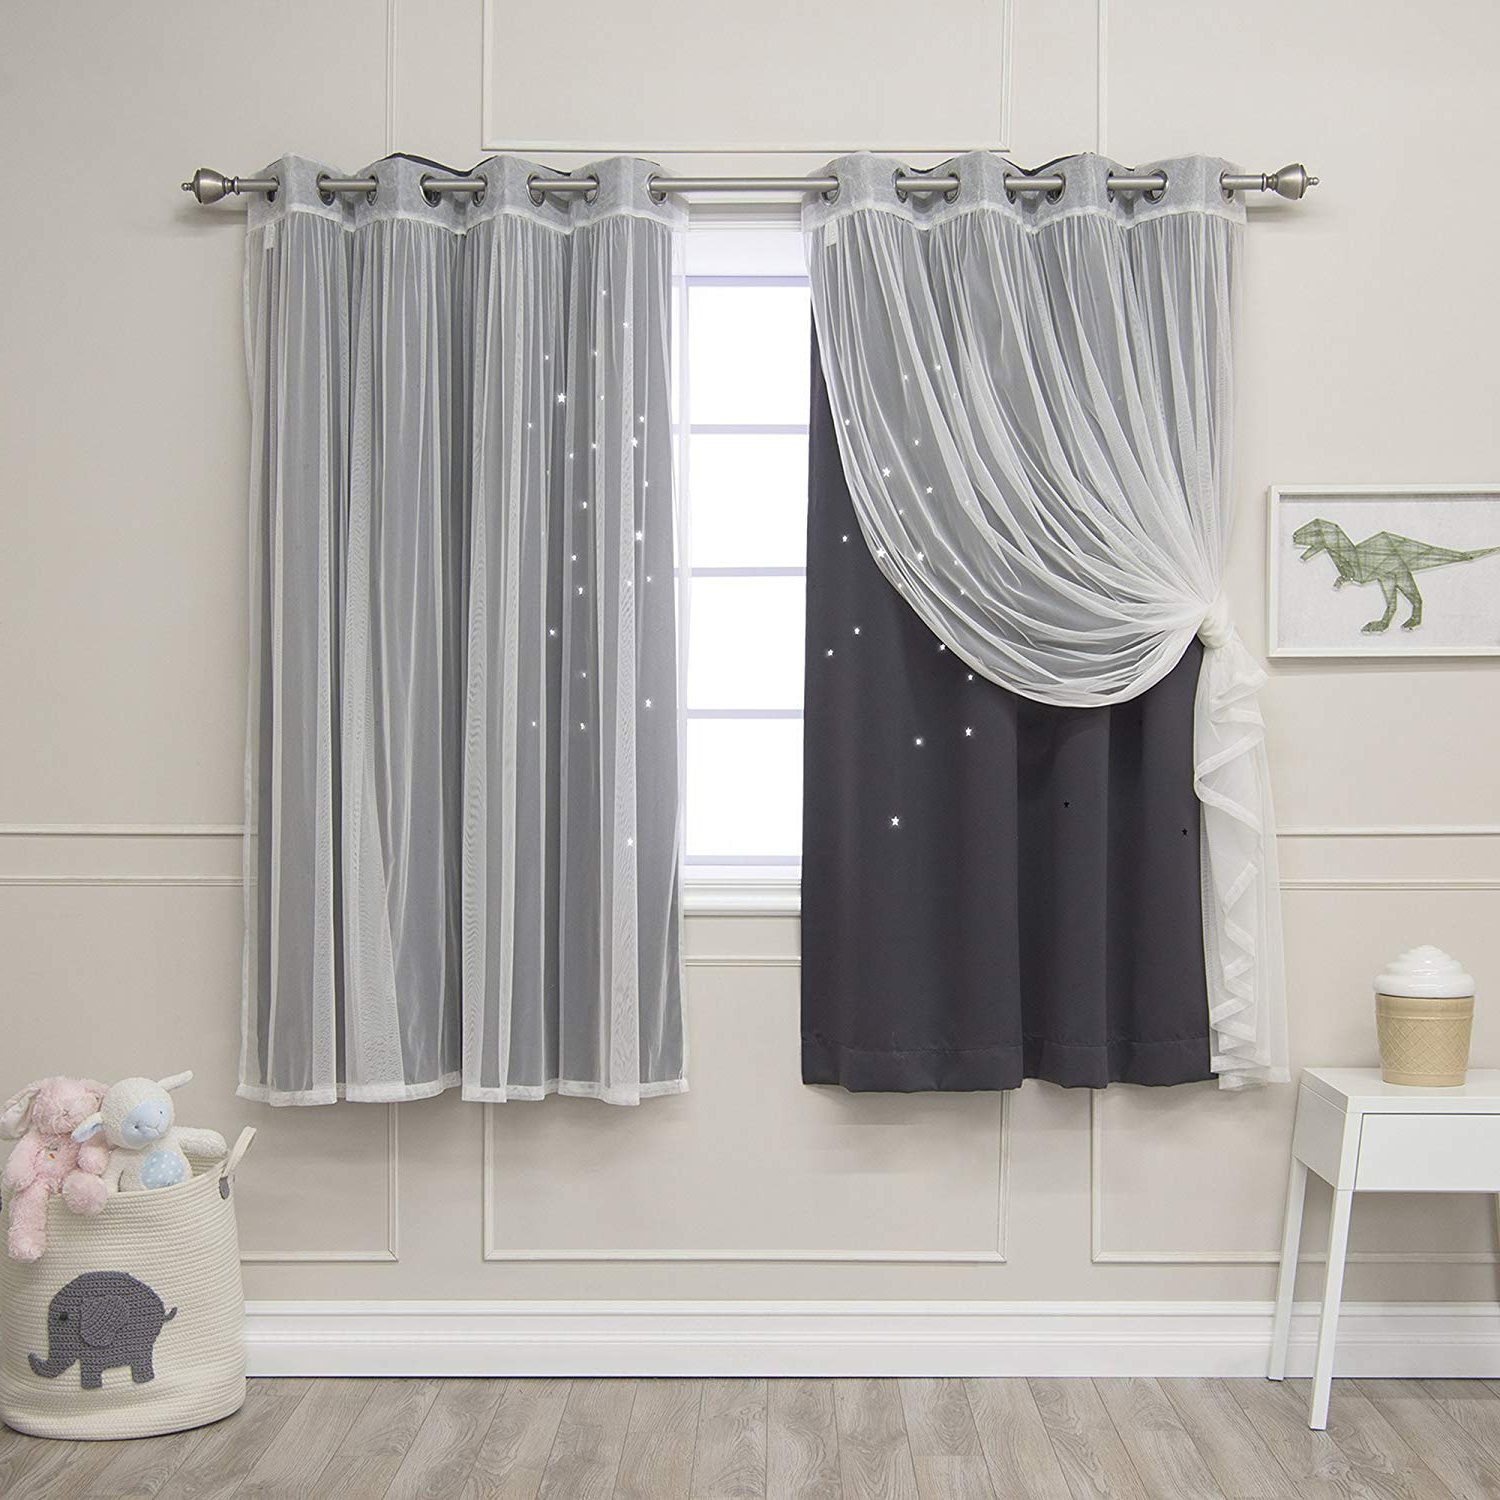 Star Punch Tulle Overlay Blackout Curtain Panel Pairs Pertaining To Well Known Best Home Fashion Umixm Tulle & Star Cut Out Blackout Curtains – Dk (View 9 of 20)